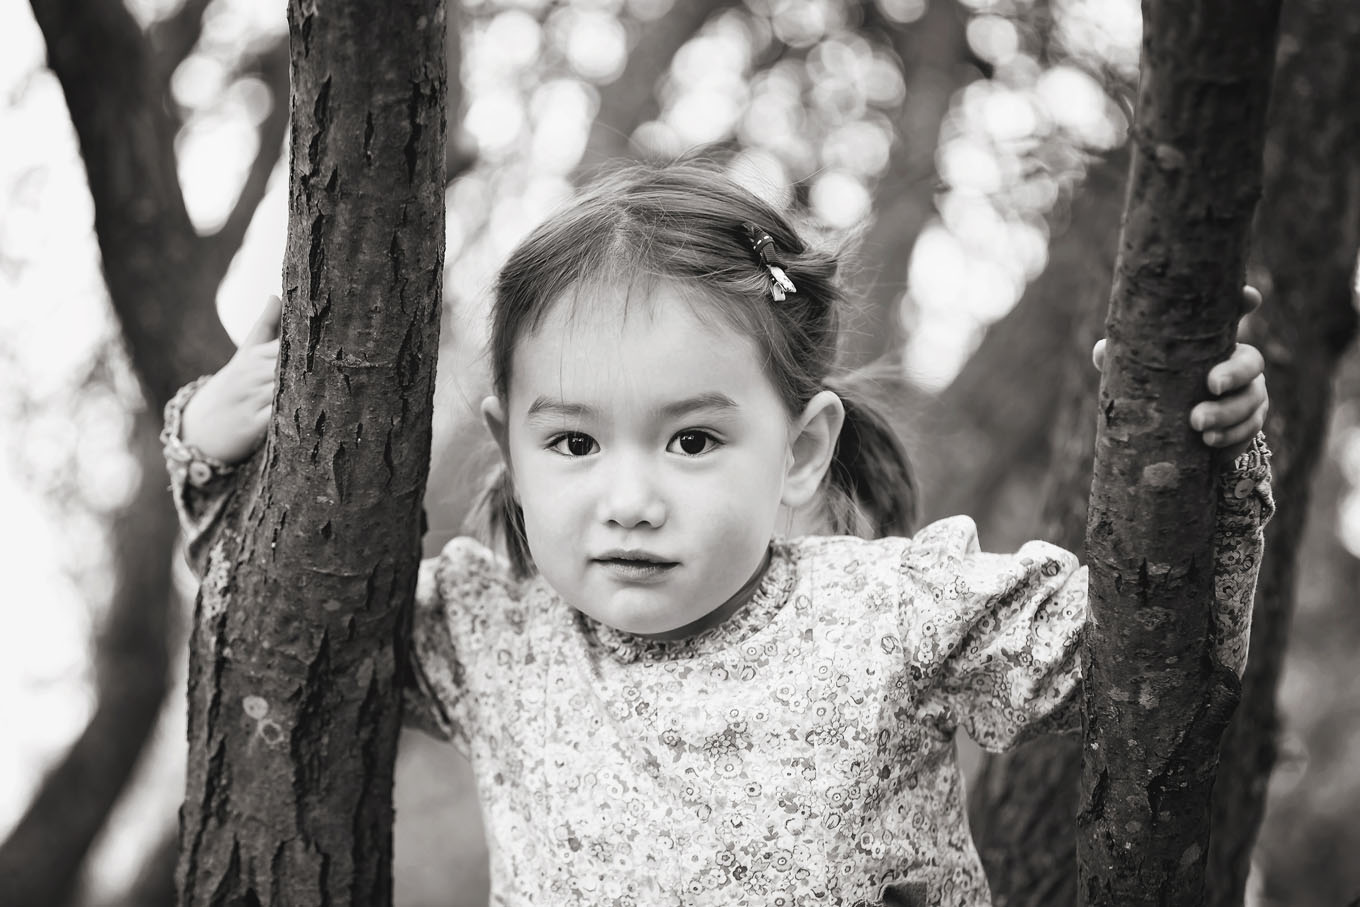 Autumnal outdoor portrait of a little girl